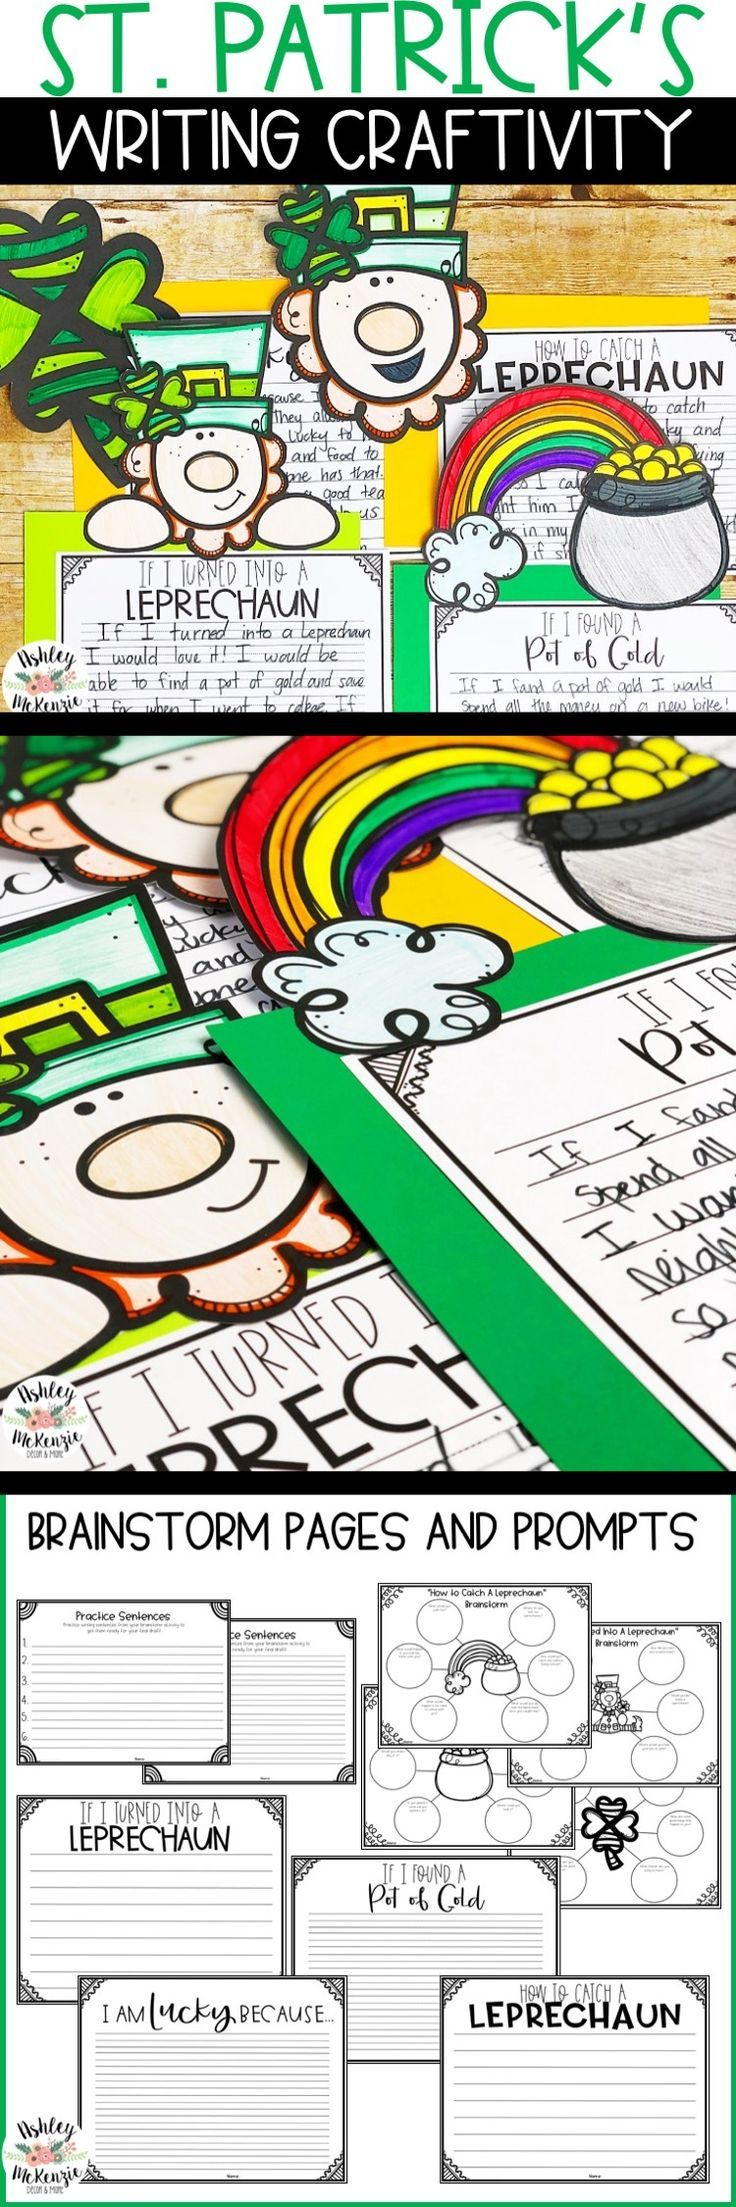 This is a great way to get students writing about St. Patrick's Day! They can use these writing prompts all during the month of March!